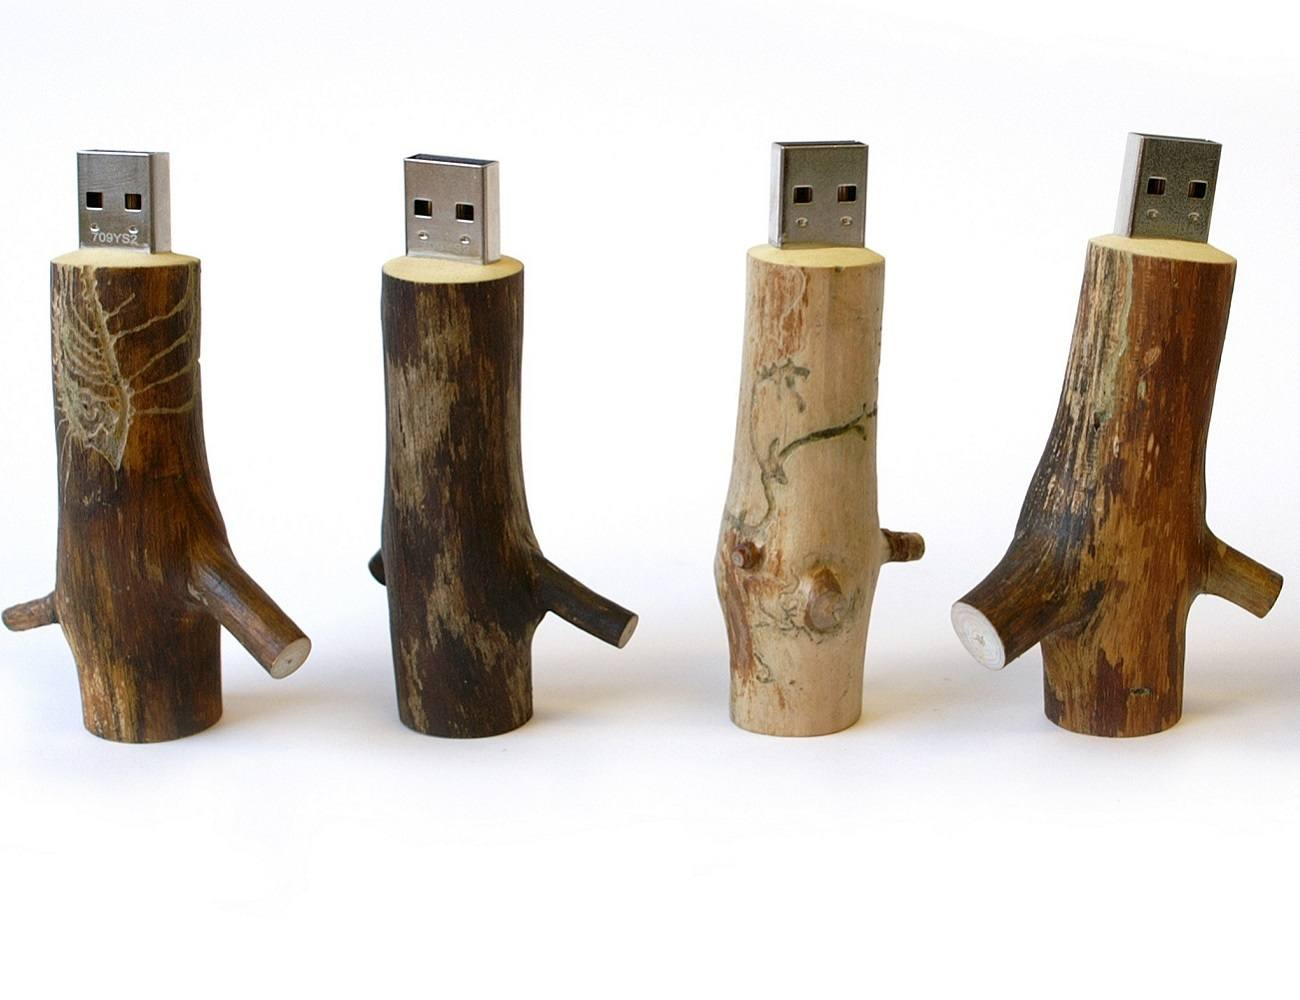 Natural USB Stick